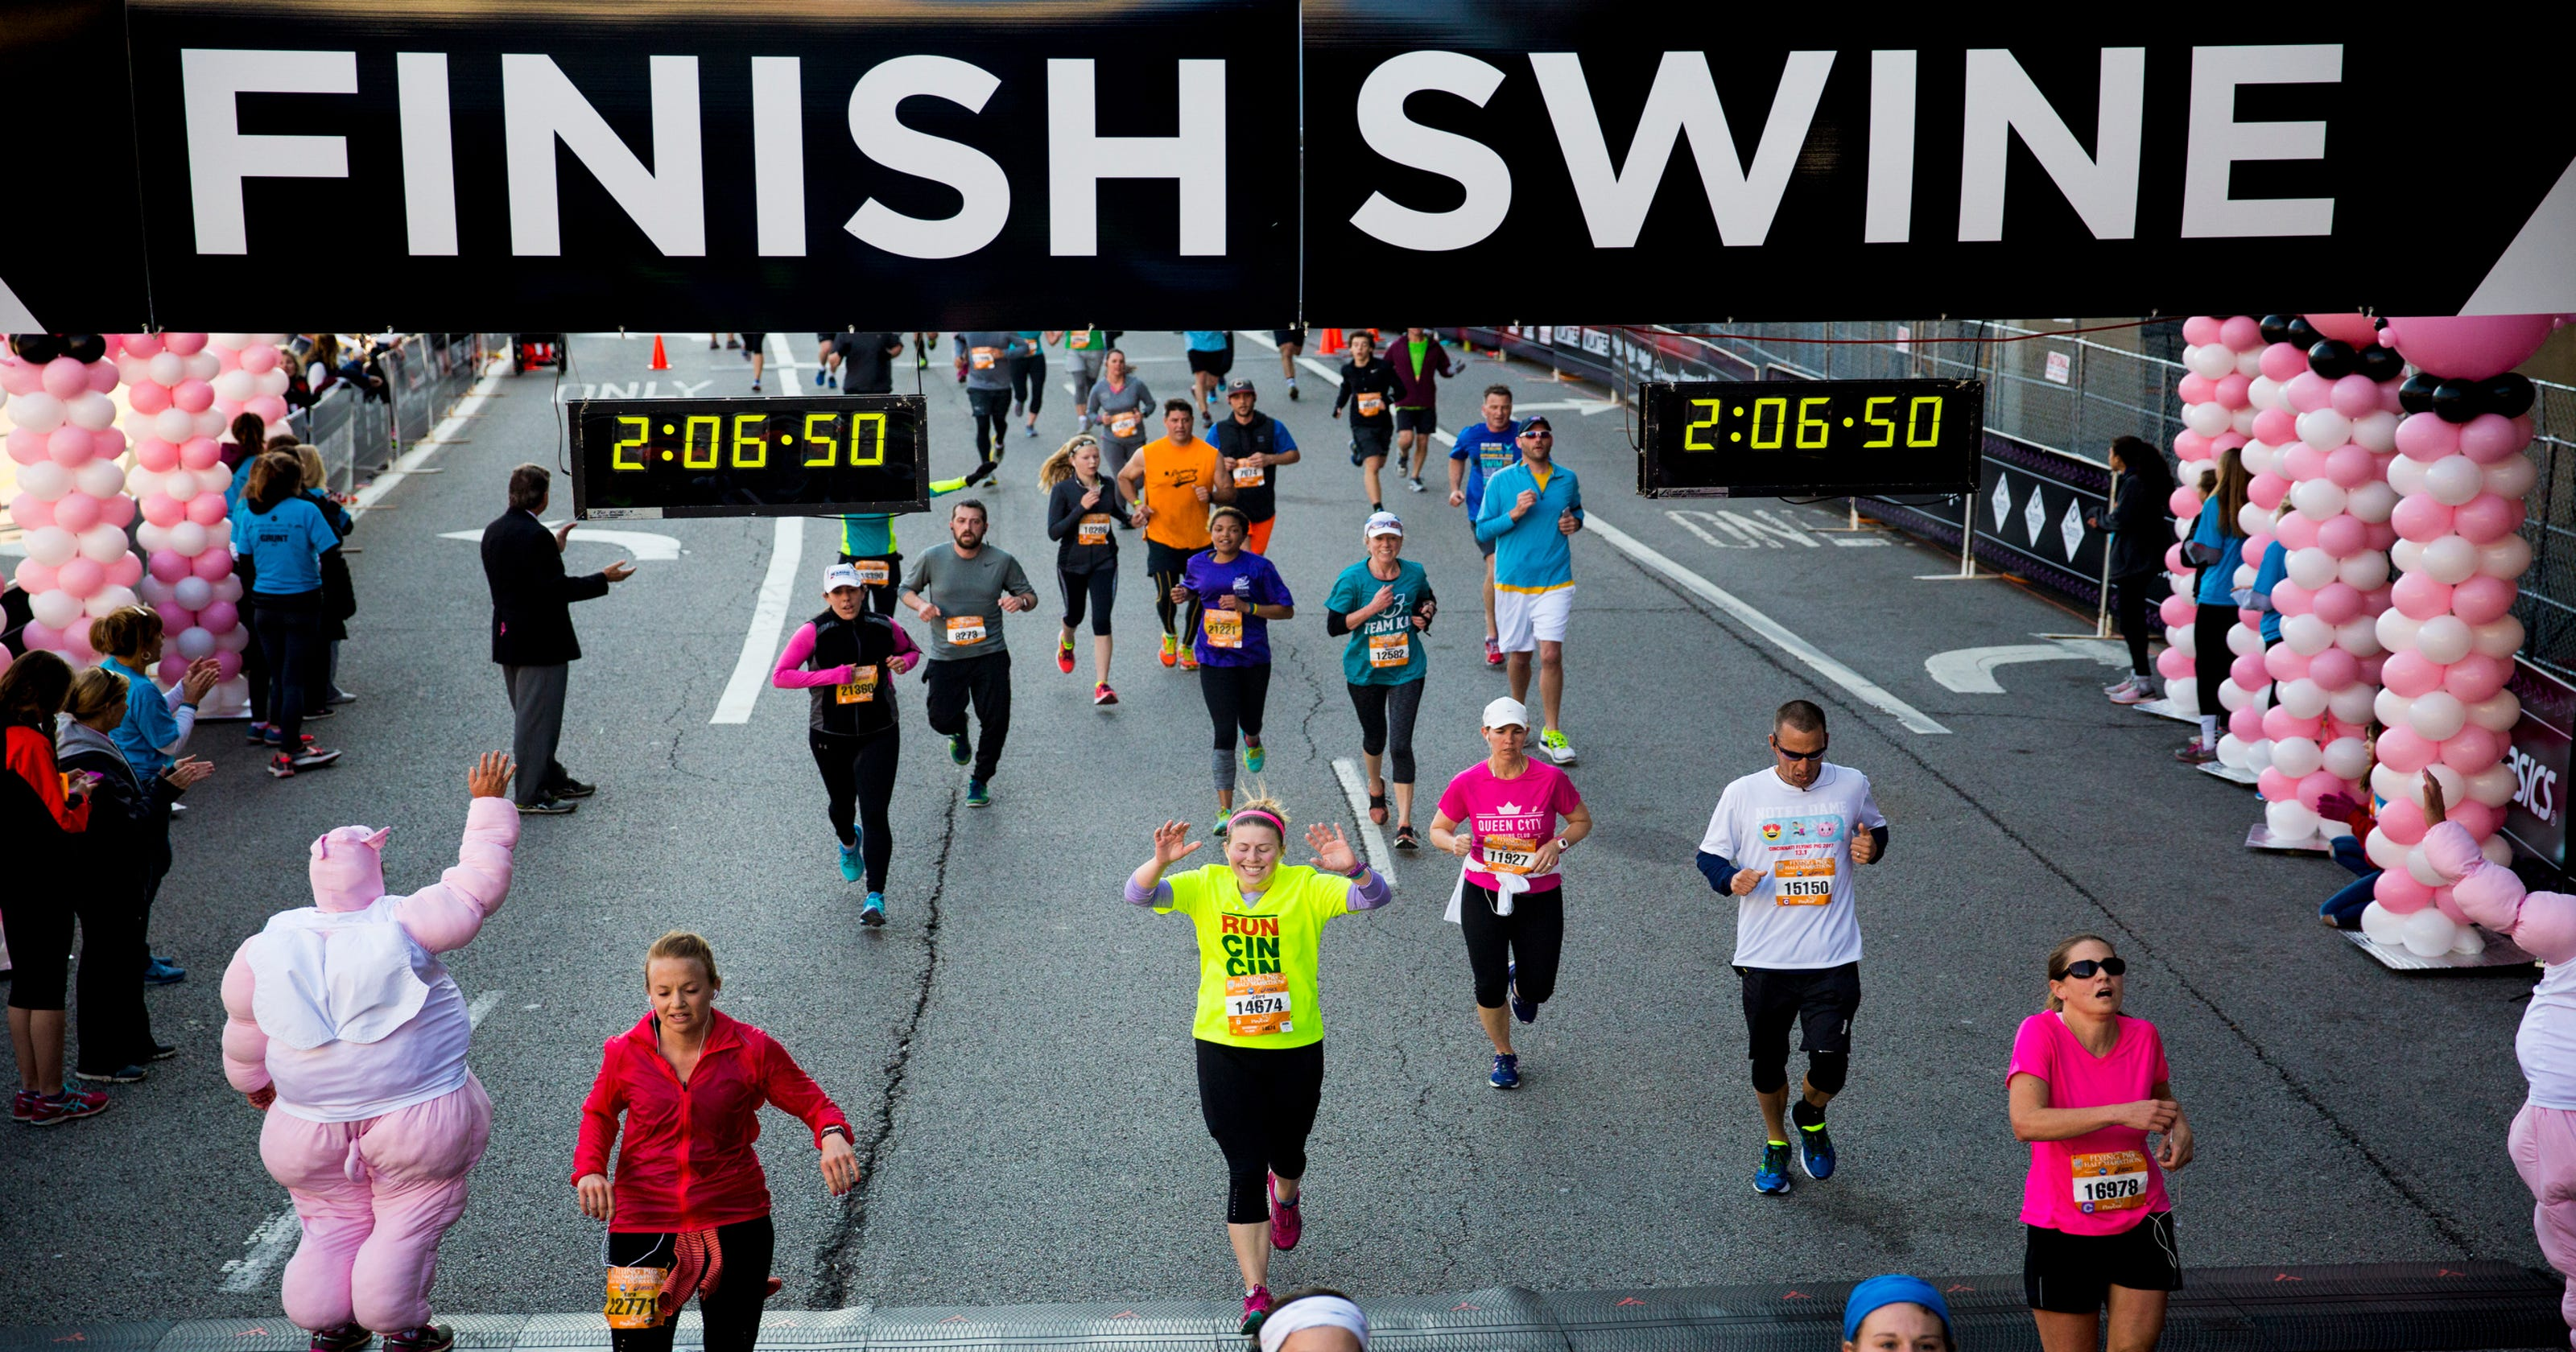 has there been a course change for your flying pig run?